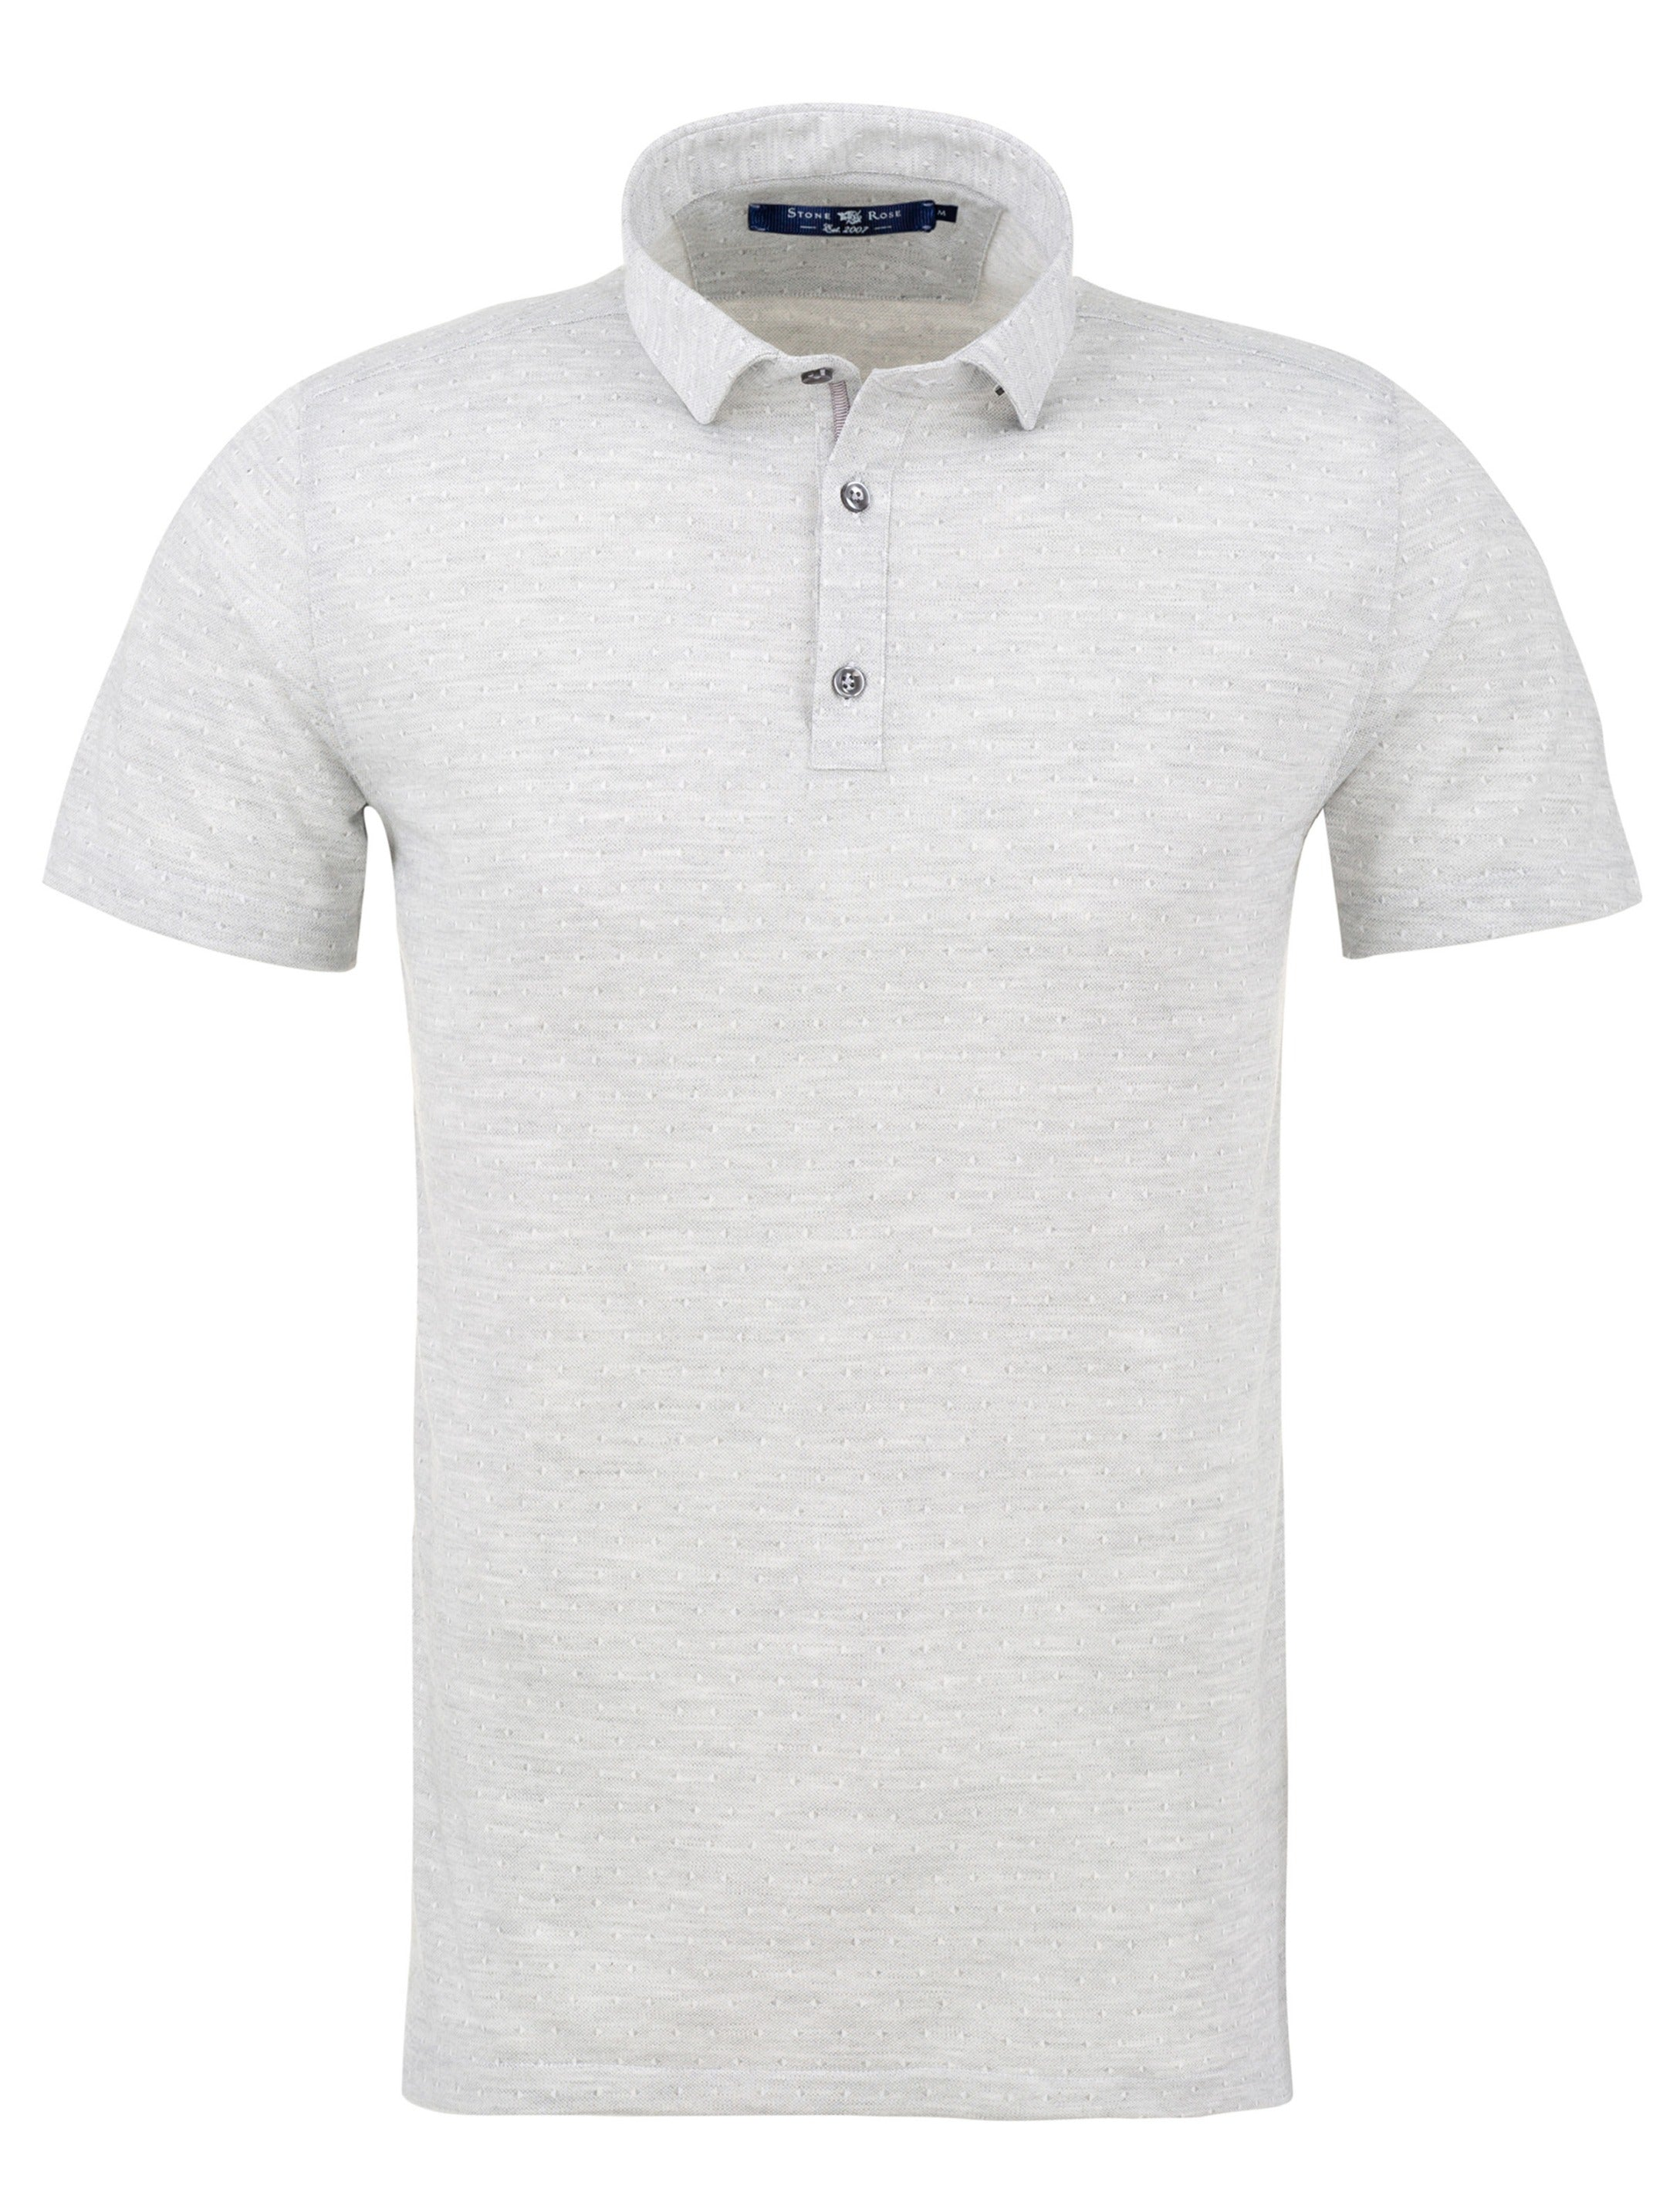 White Jacquard Knit Polo